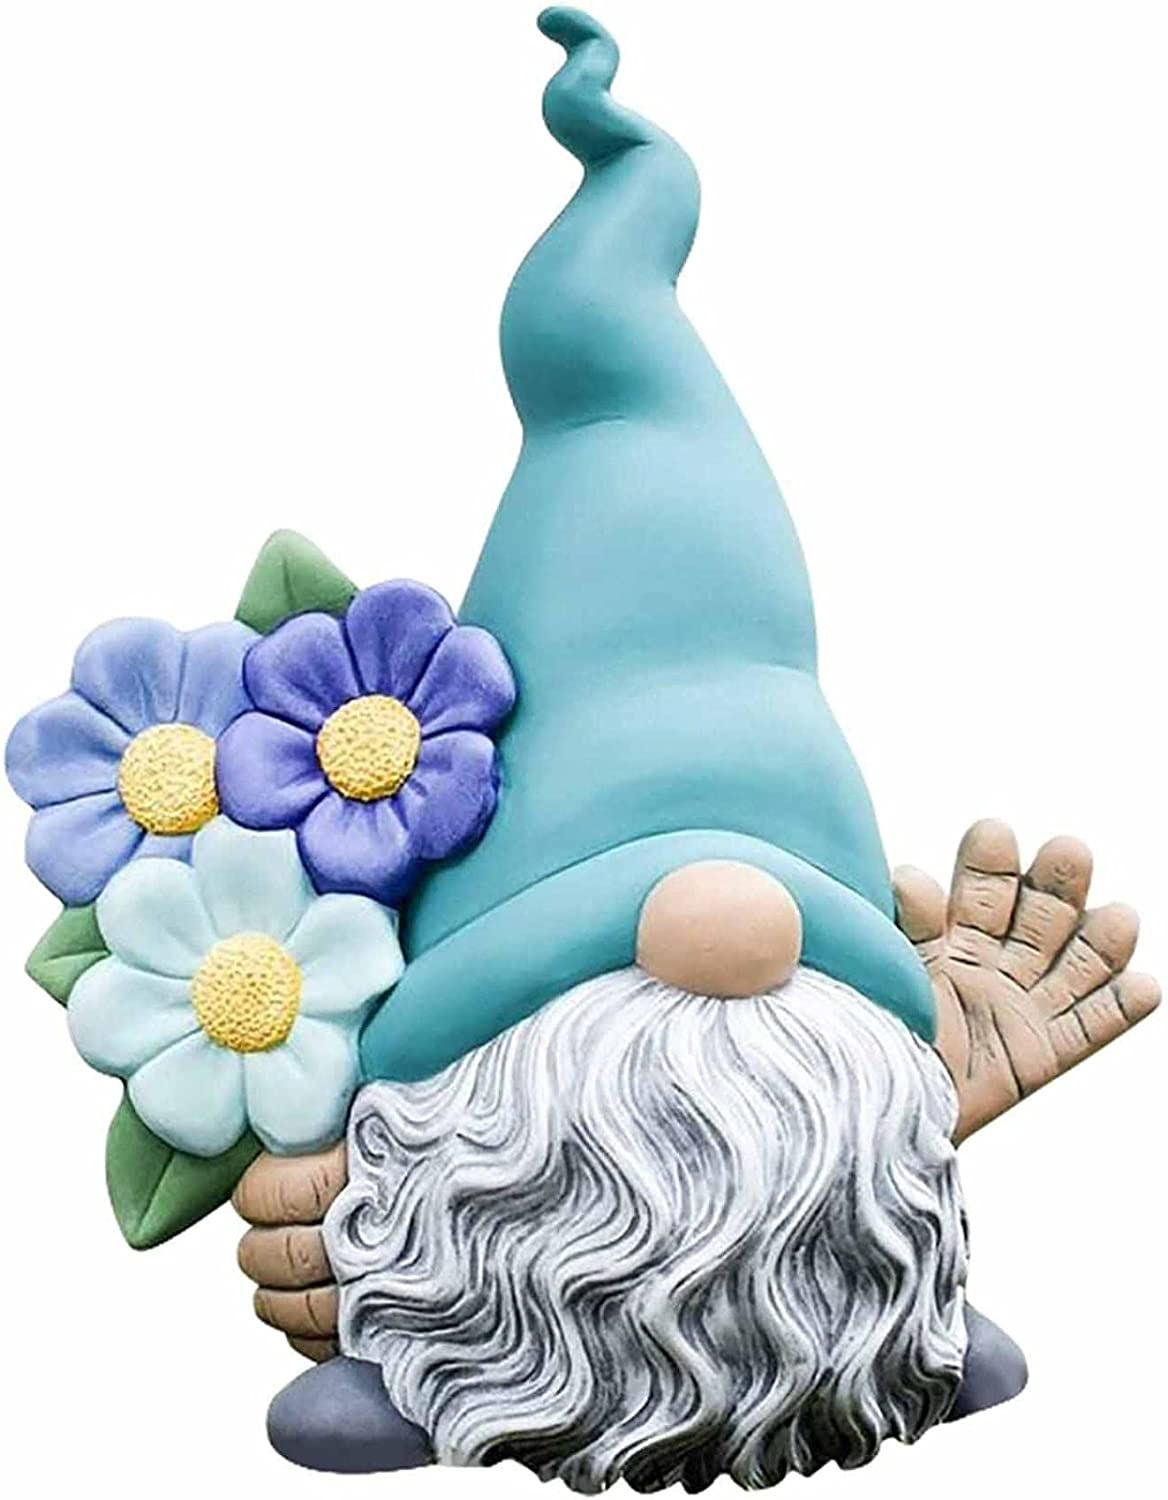 Magic Portland Mall Garden Gnomes Statues Dwarf Statue Figur Collectible Limited price Resin